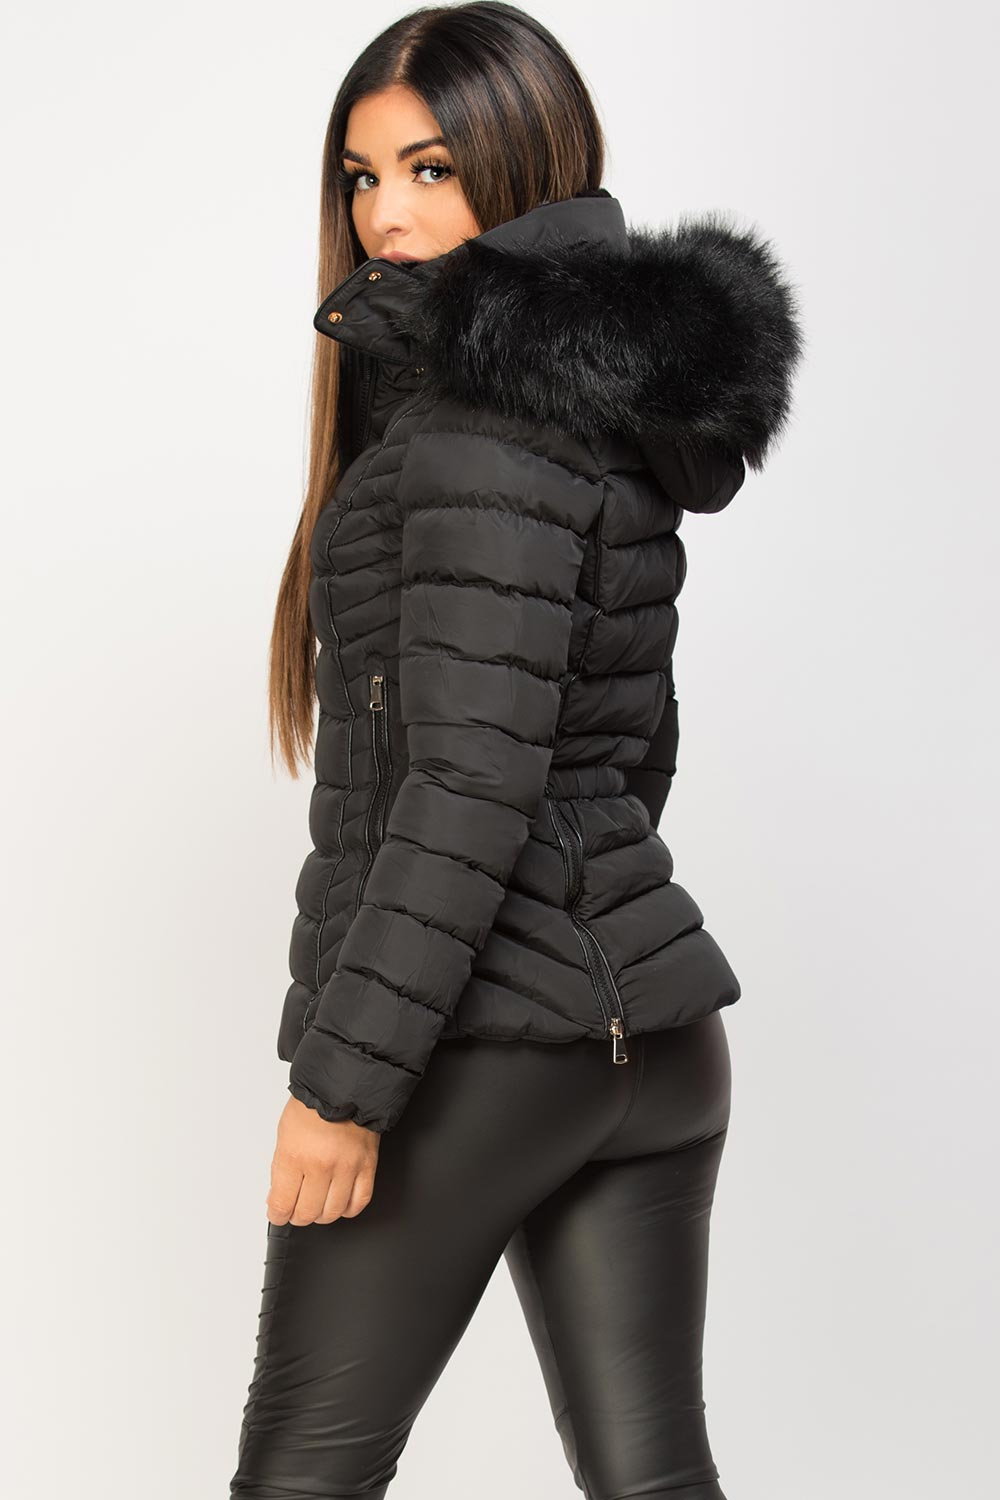 black puffer jacket with faux fur hood